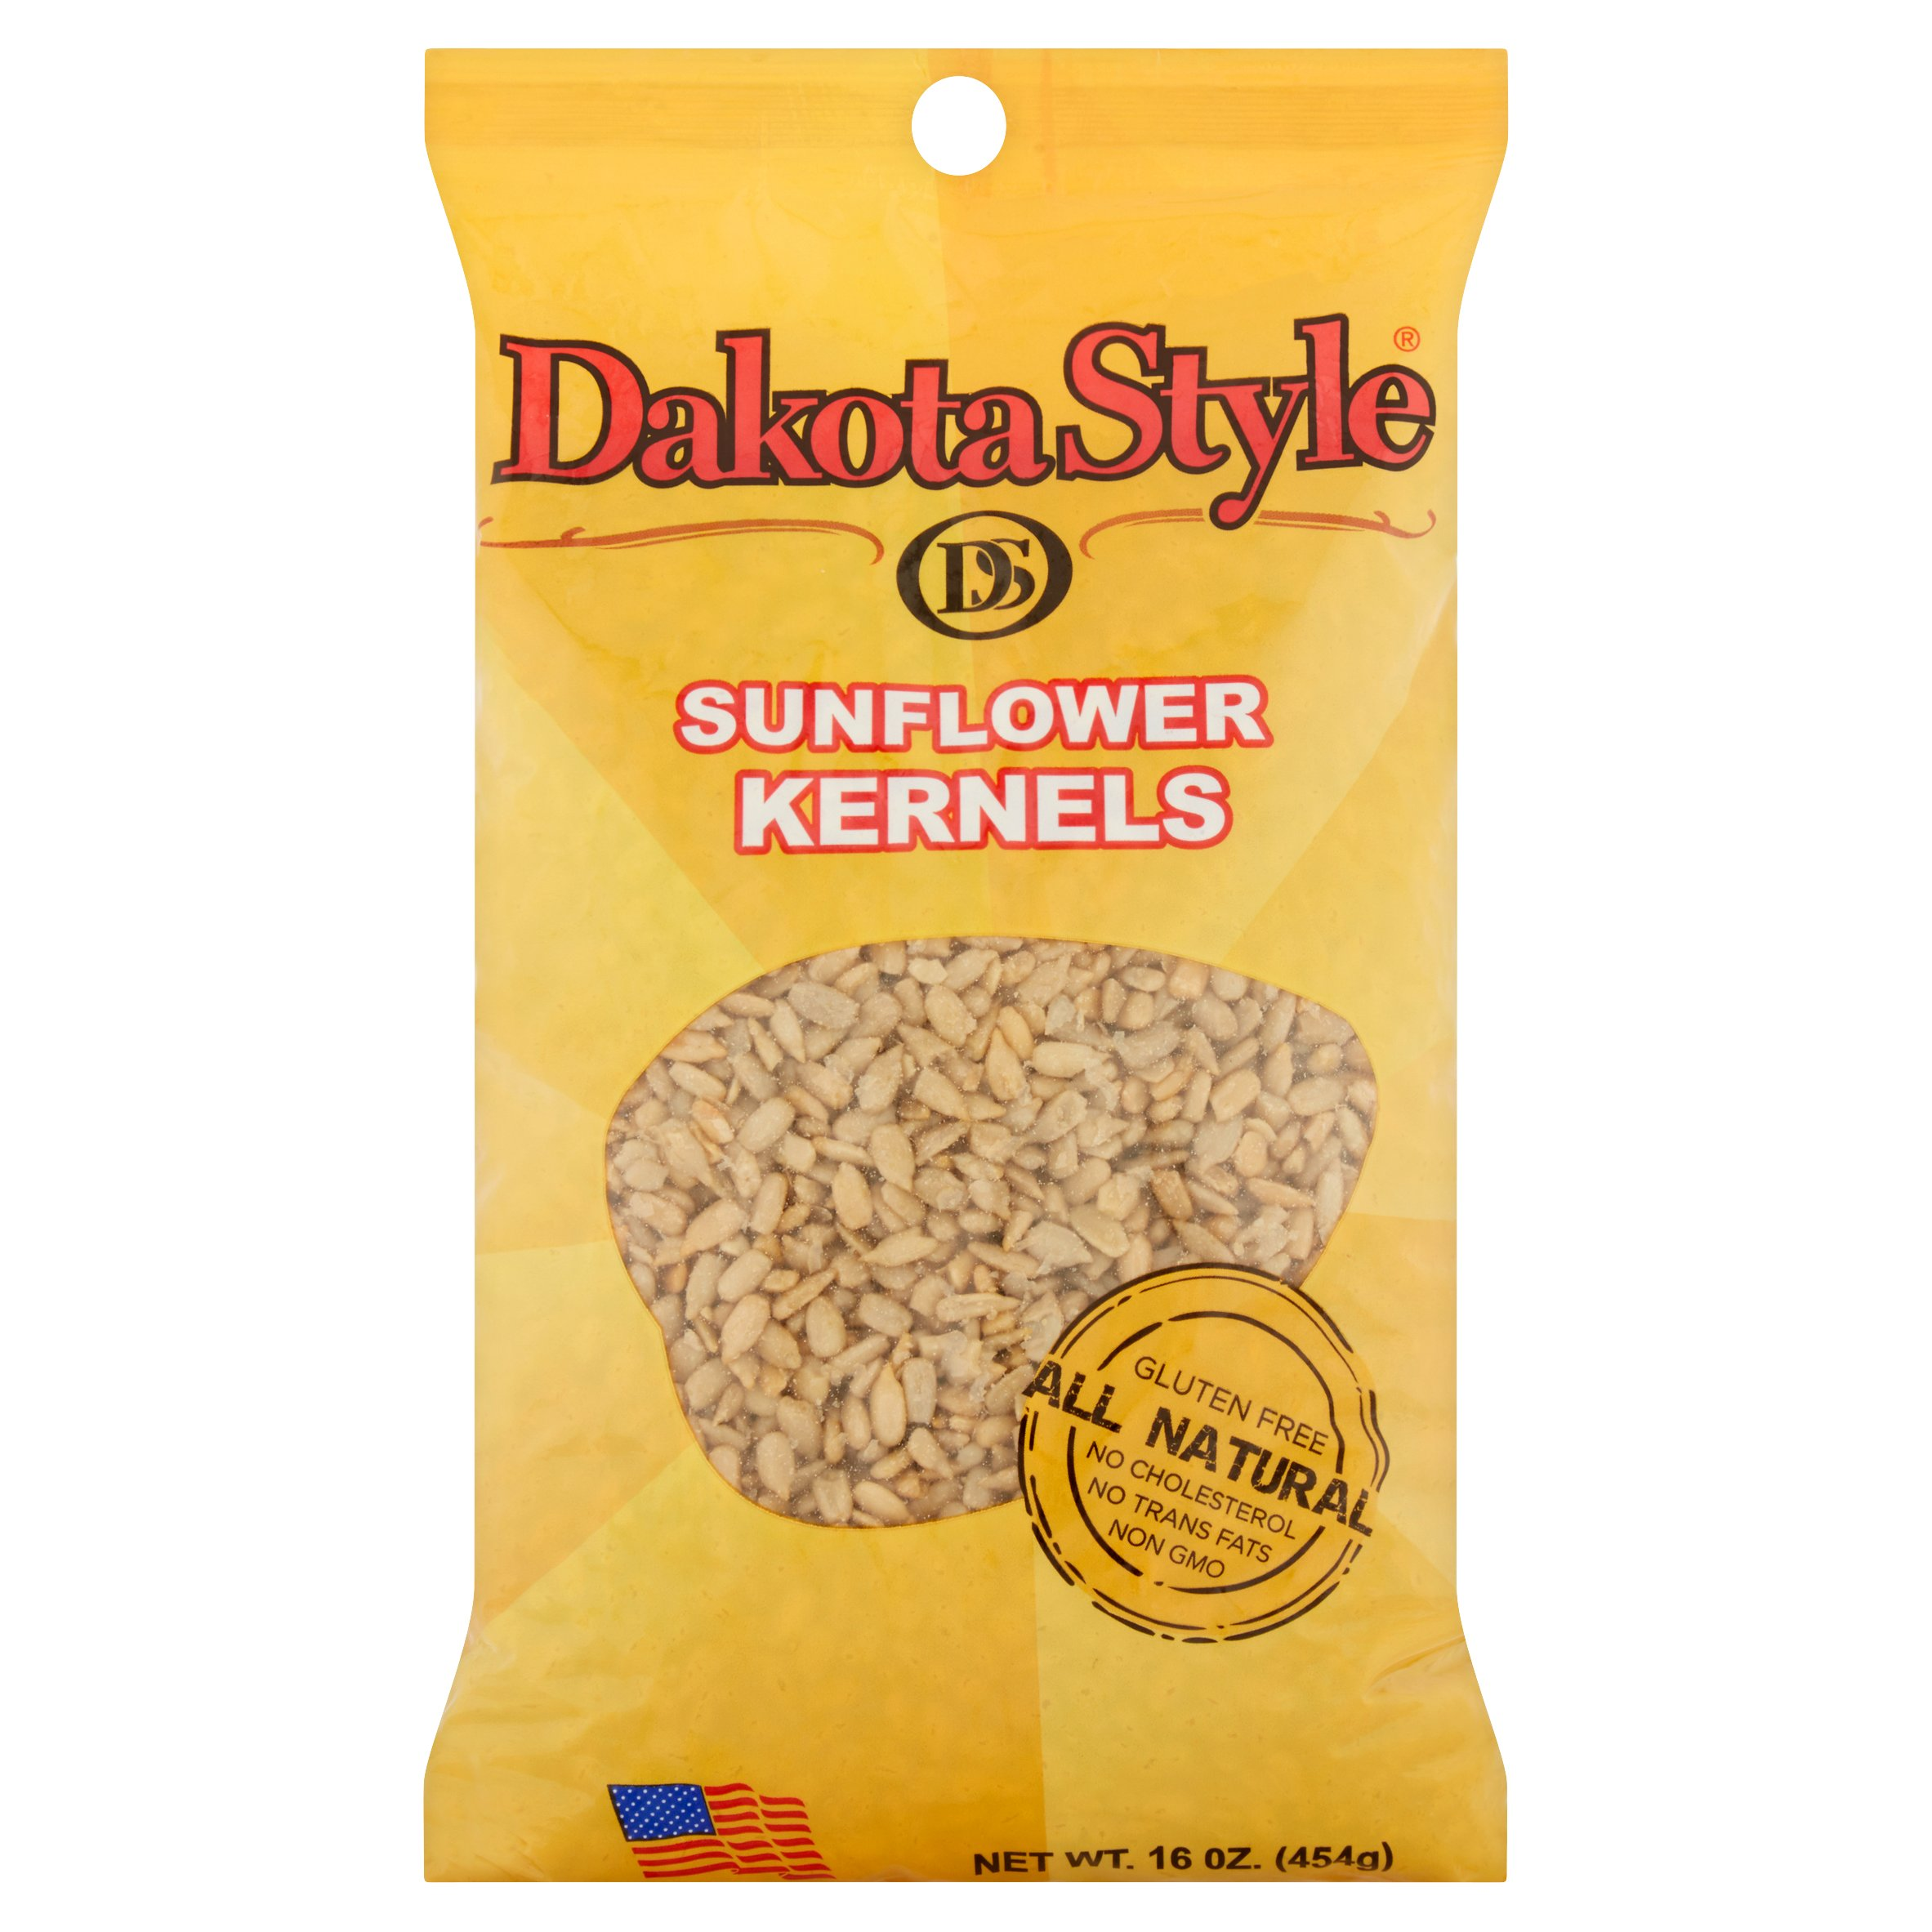 Dakota Style Roasted and Salted Sunflower Kernels, 16 oz